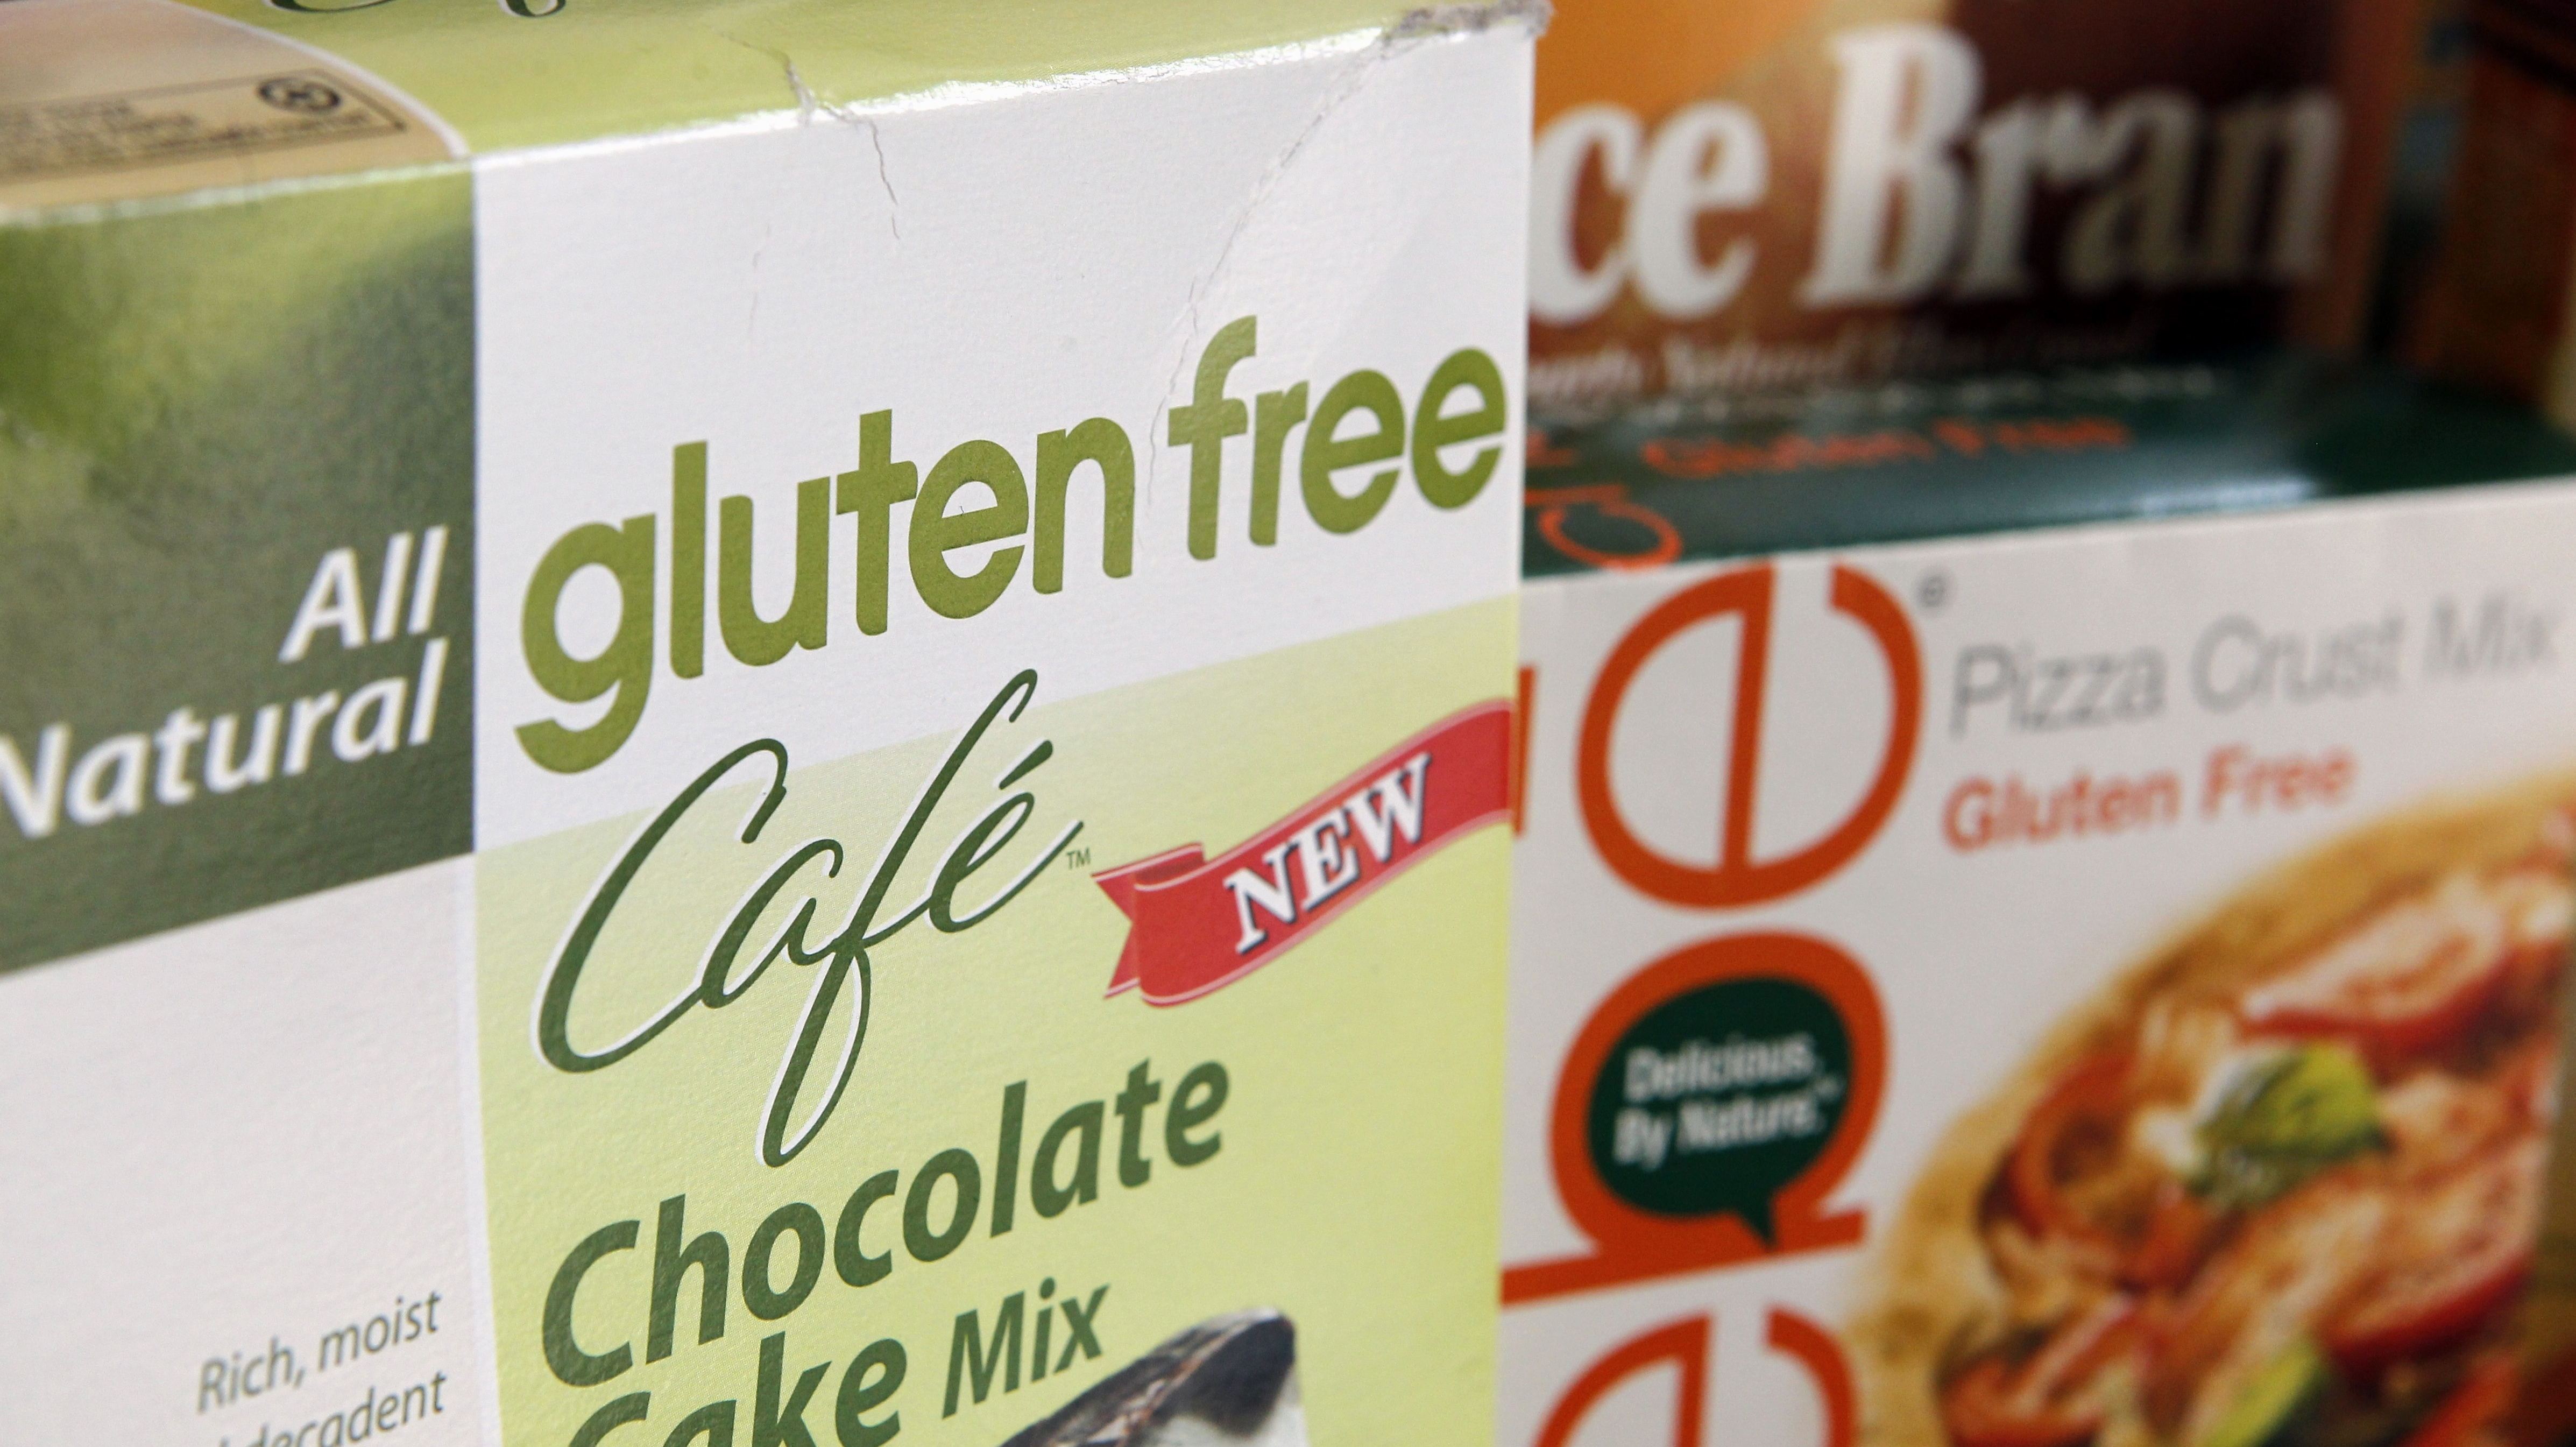 Gluten-Free Finally Means Something with New FDA Rules for Food Labels advise